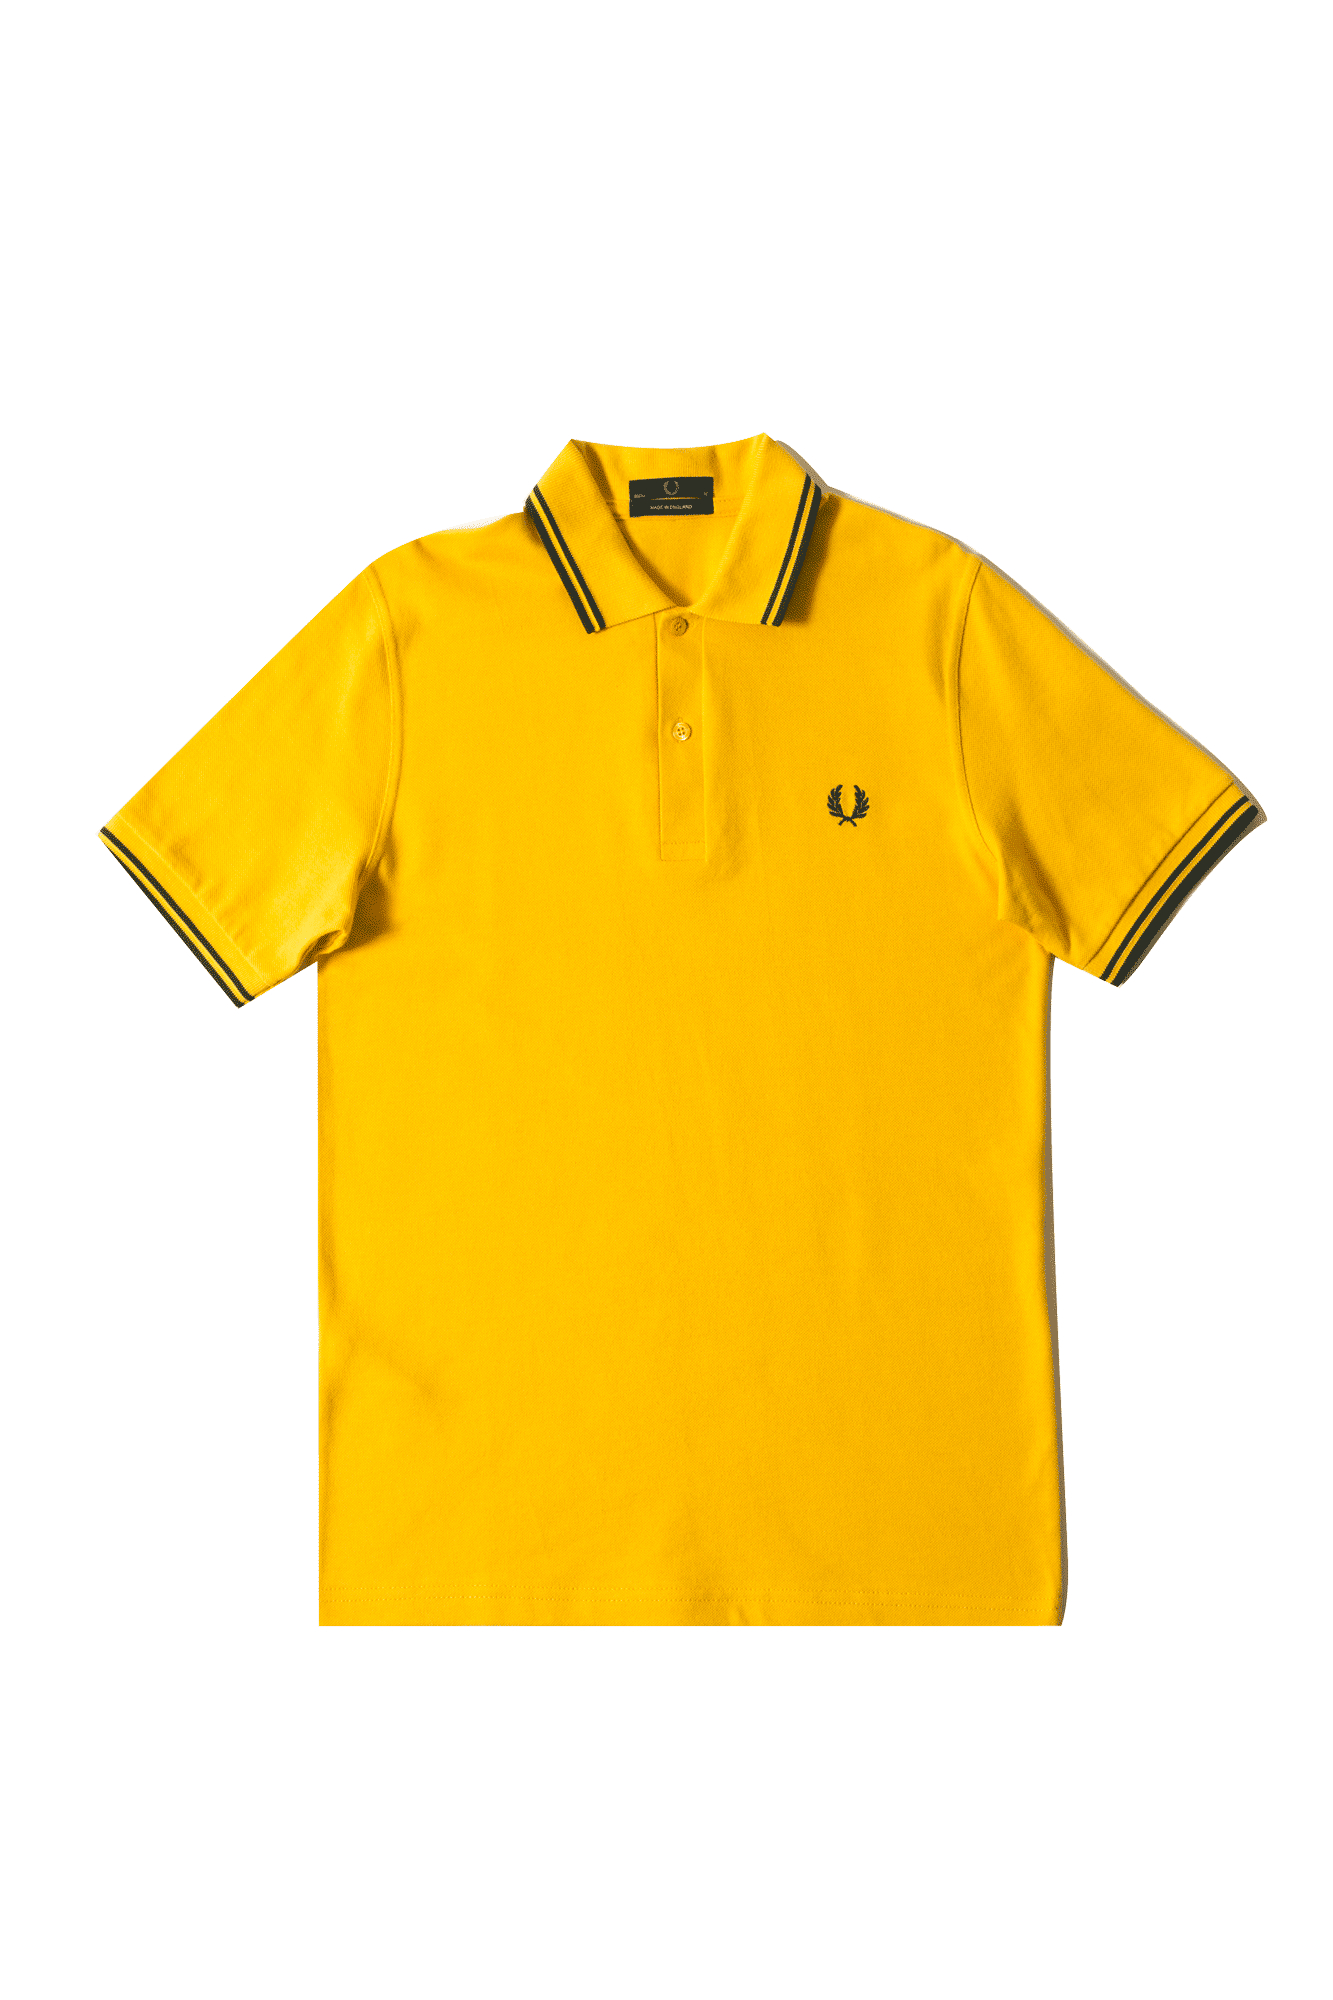 Fred Perry Polo Twin Tipped Shirt Yellow M12971#000#C0008#44 - One Block Down